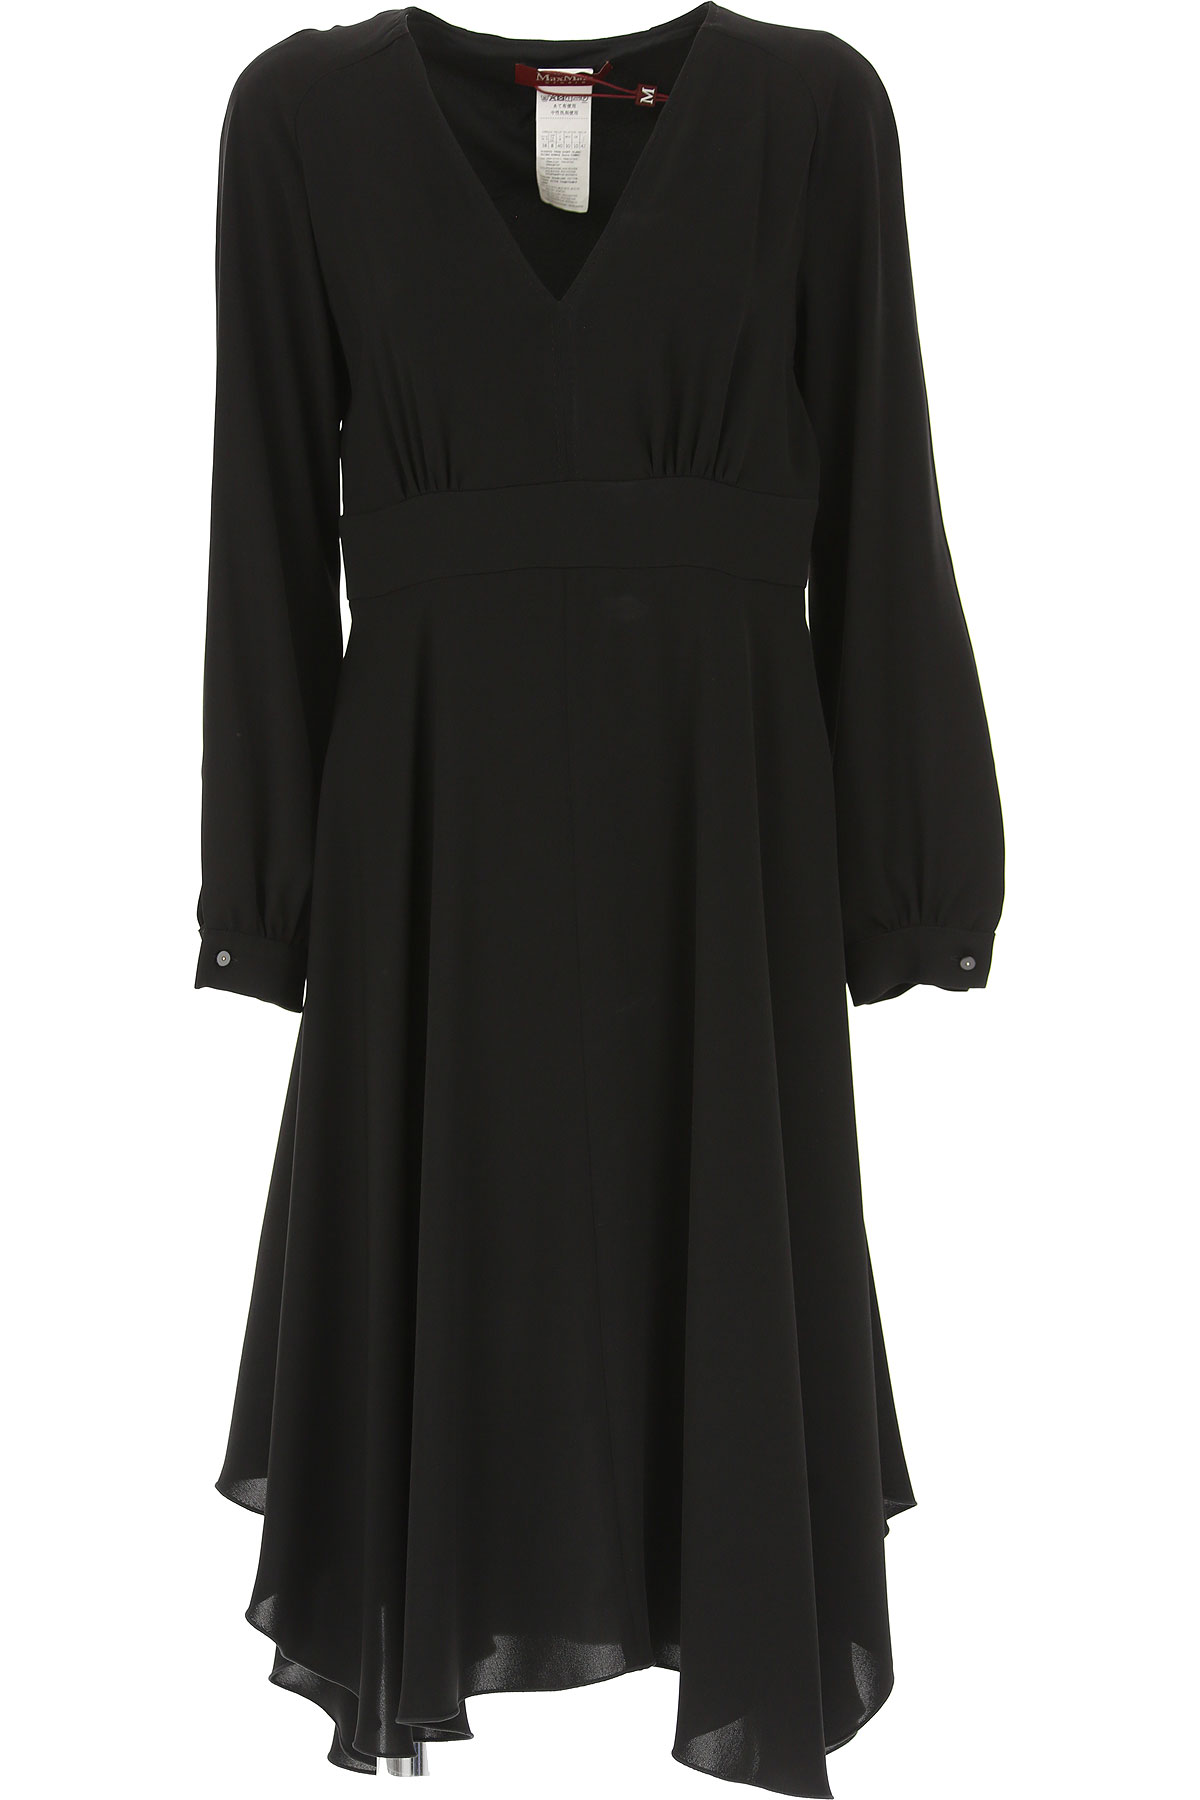 Image of Weekend by Max Mara Dress for Women, Evening Cocktail Party, Black, Triacetate, 2017, 10 6 8